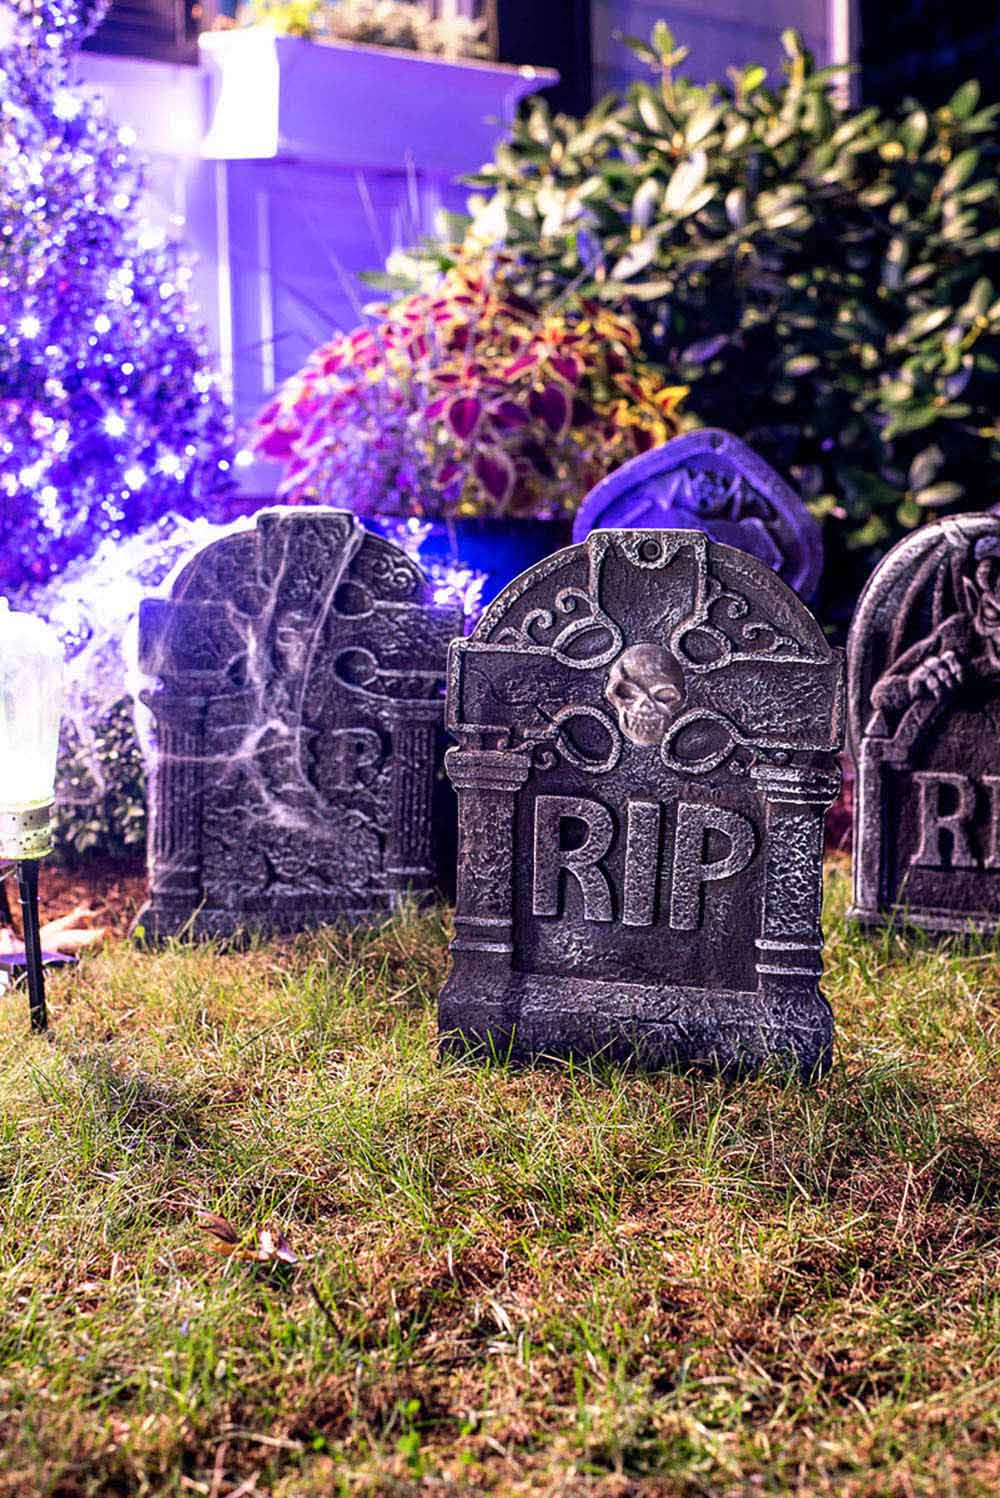 A night shot of the decorative tombstone with purple lights